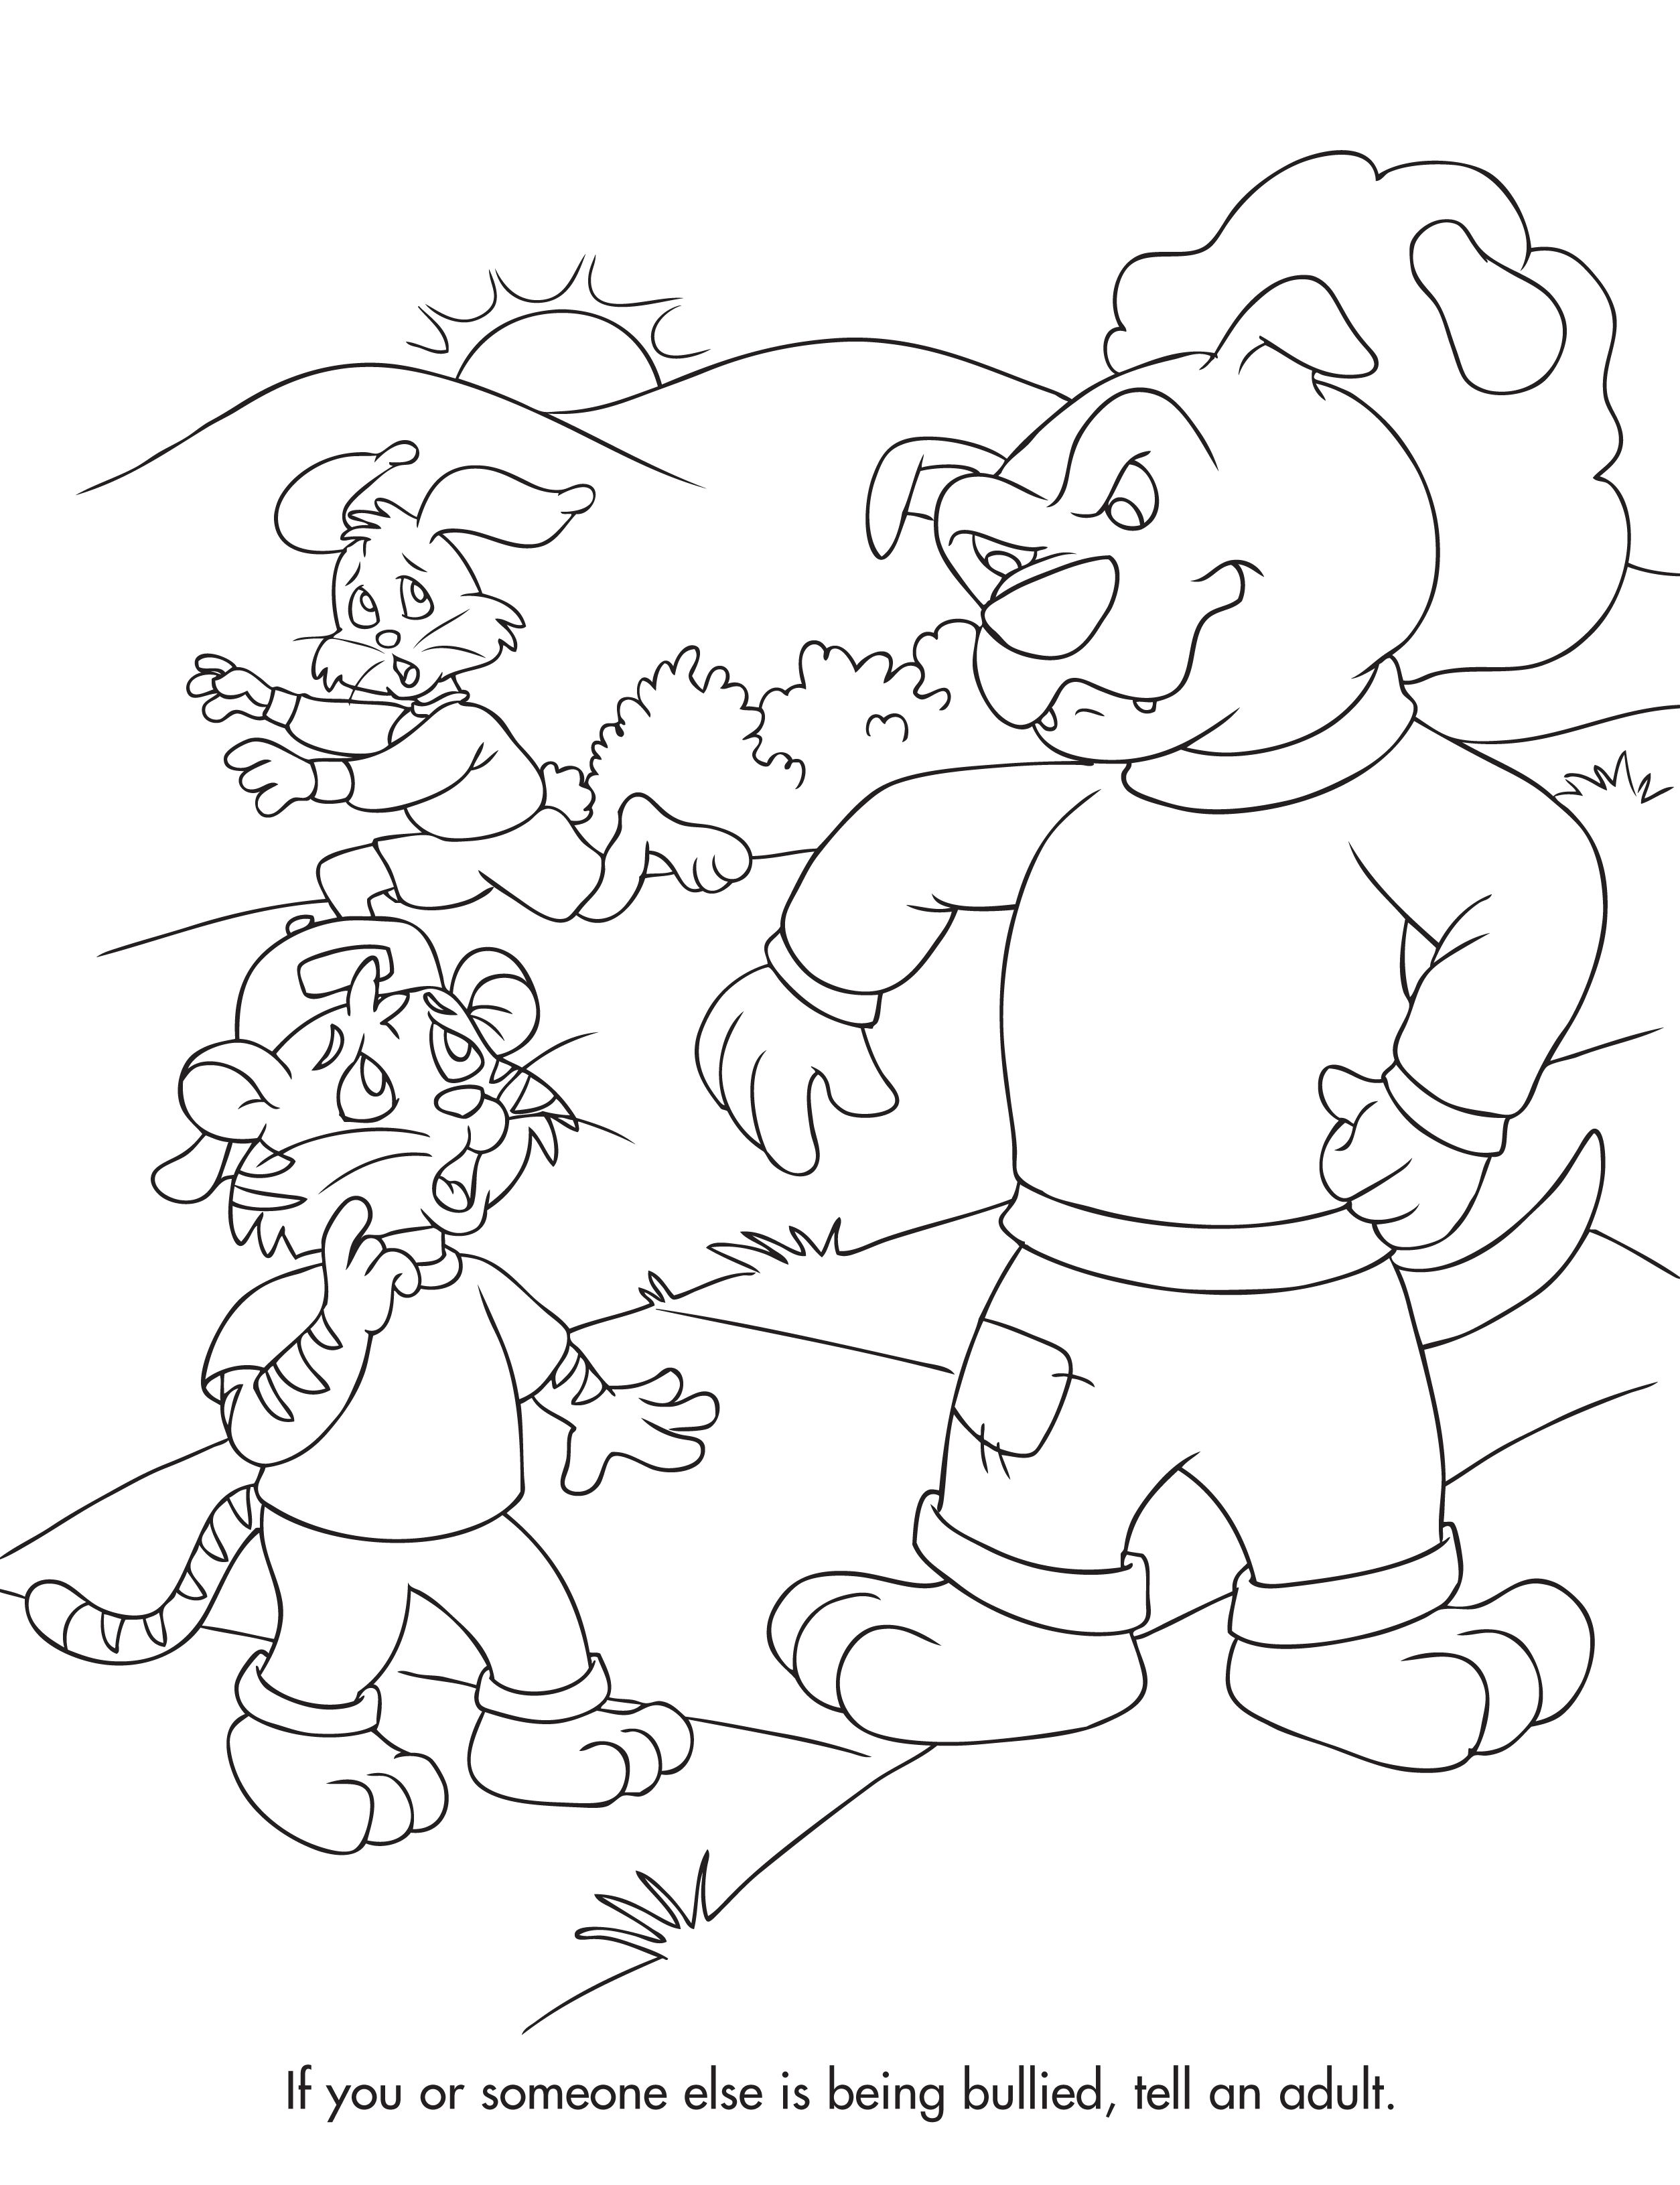 Pin On Coloring And Activity Sheets